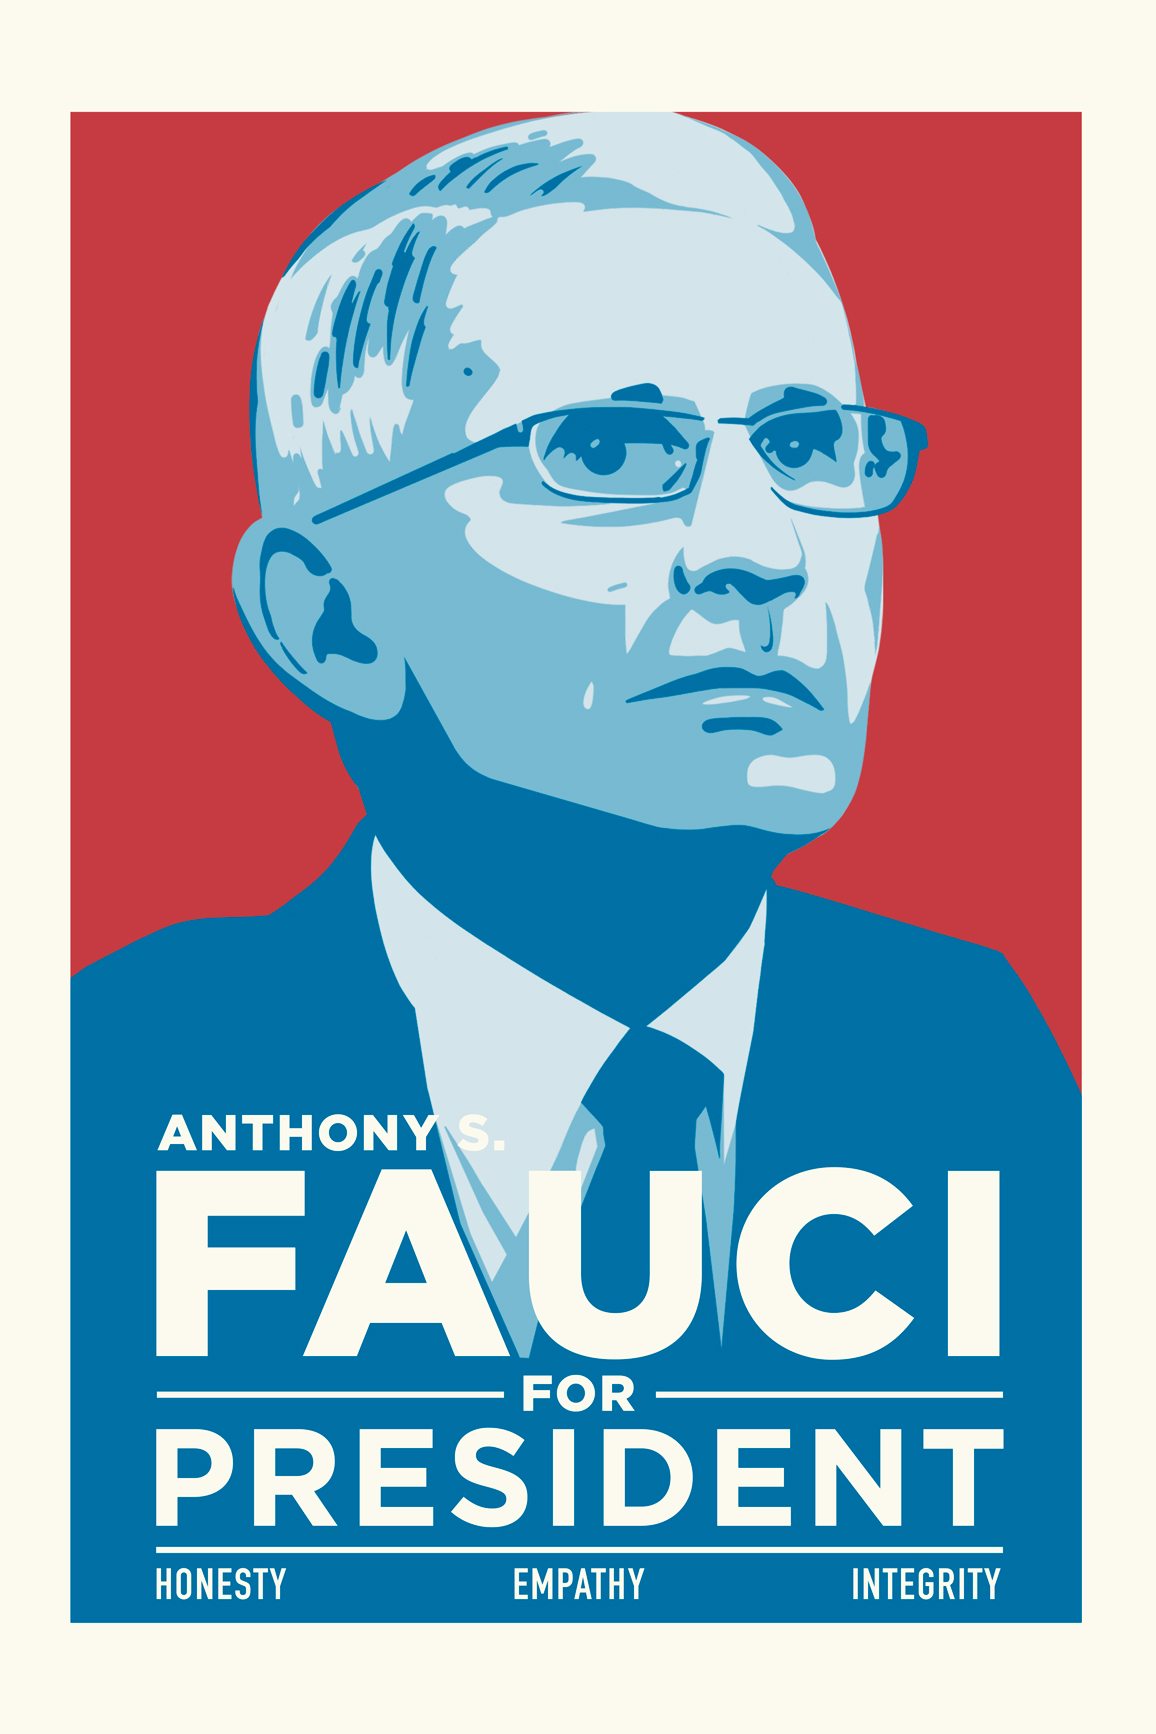 Anthony S. Fauci for President